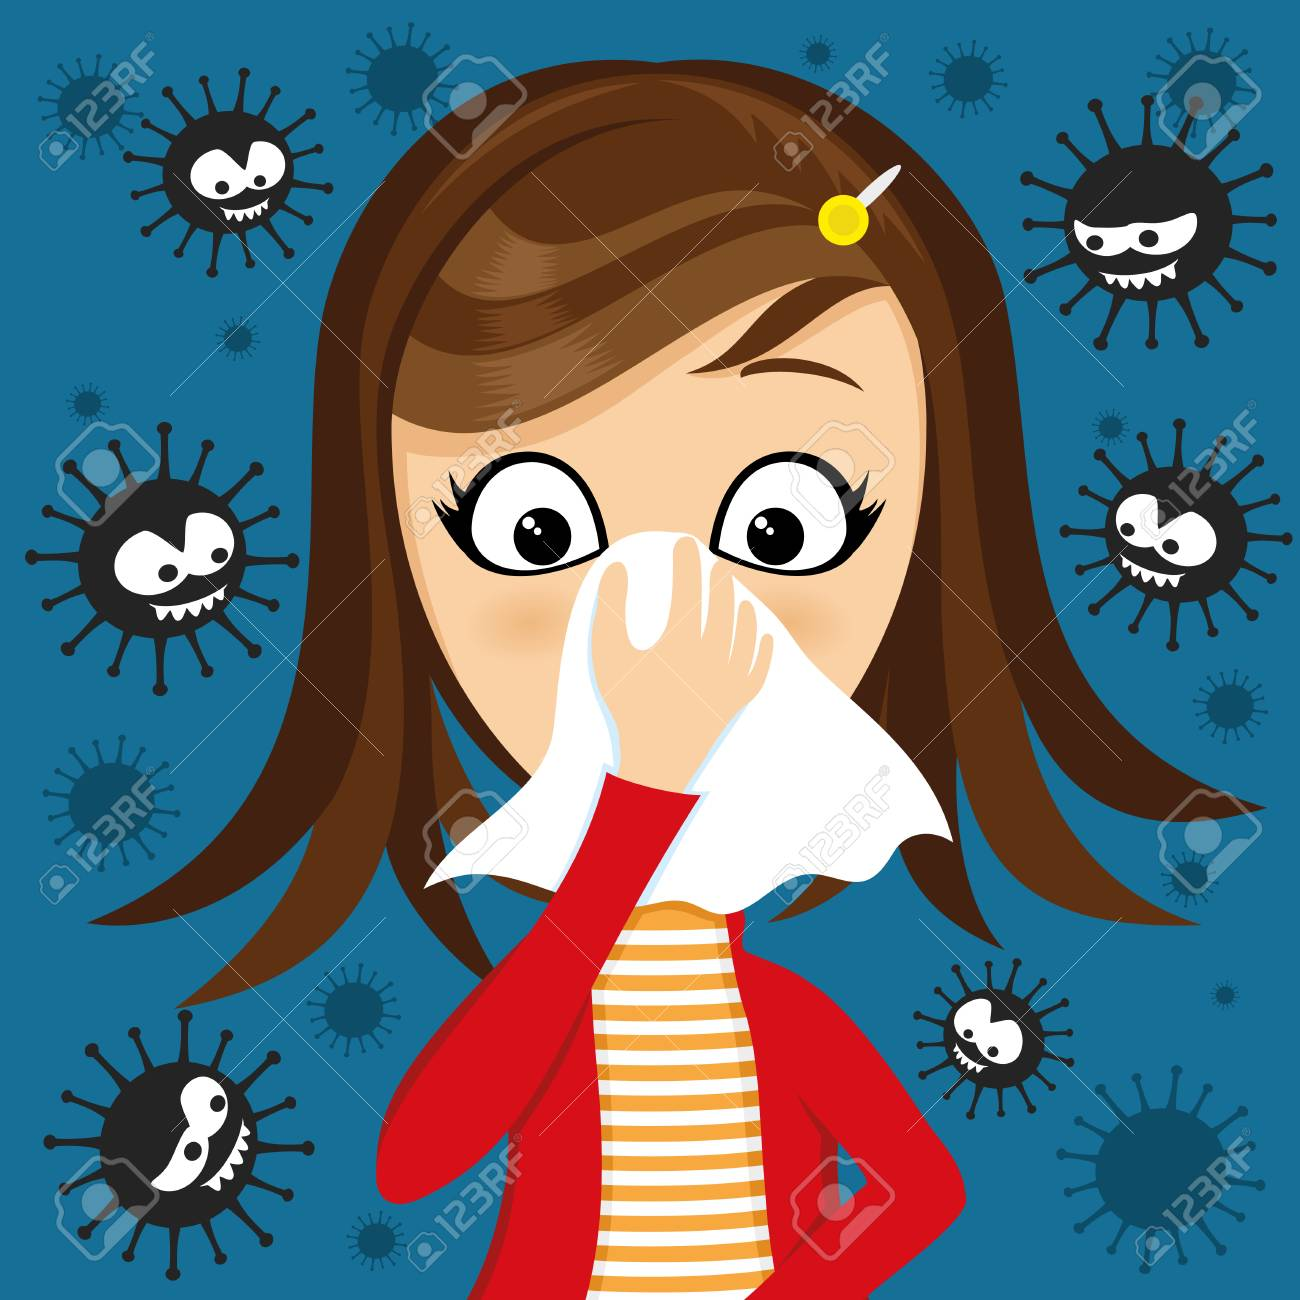 Girl Has Runny Nose And Viruses Around Royalty Free Cliparts Vectors And Stock Illustration Image 110687887